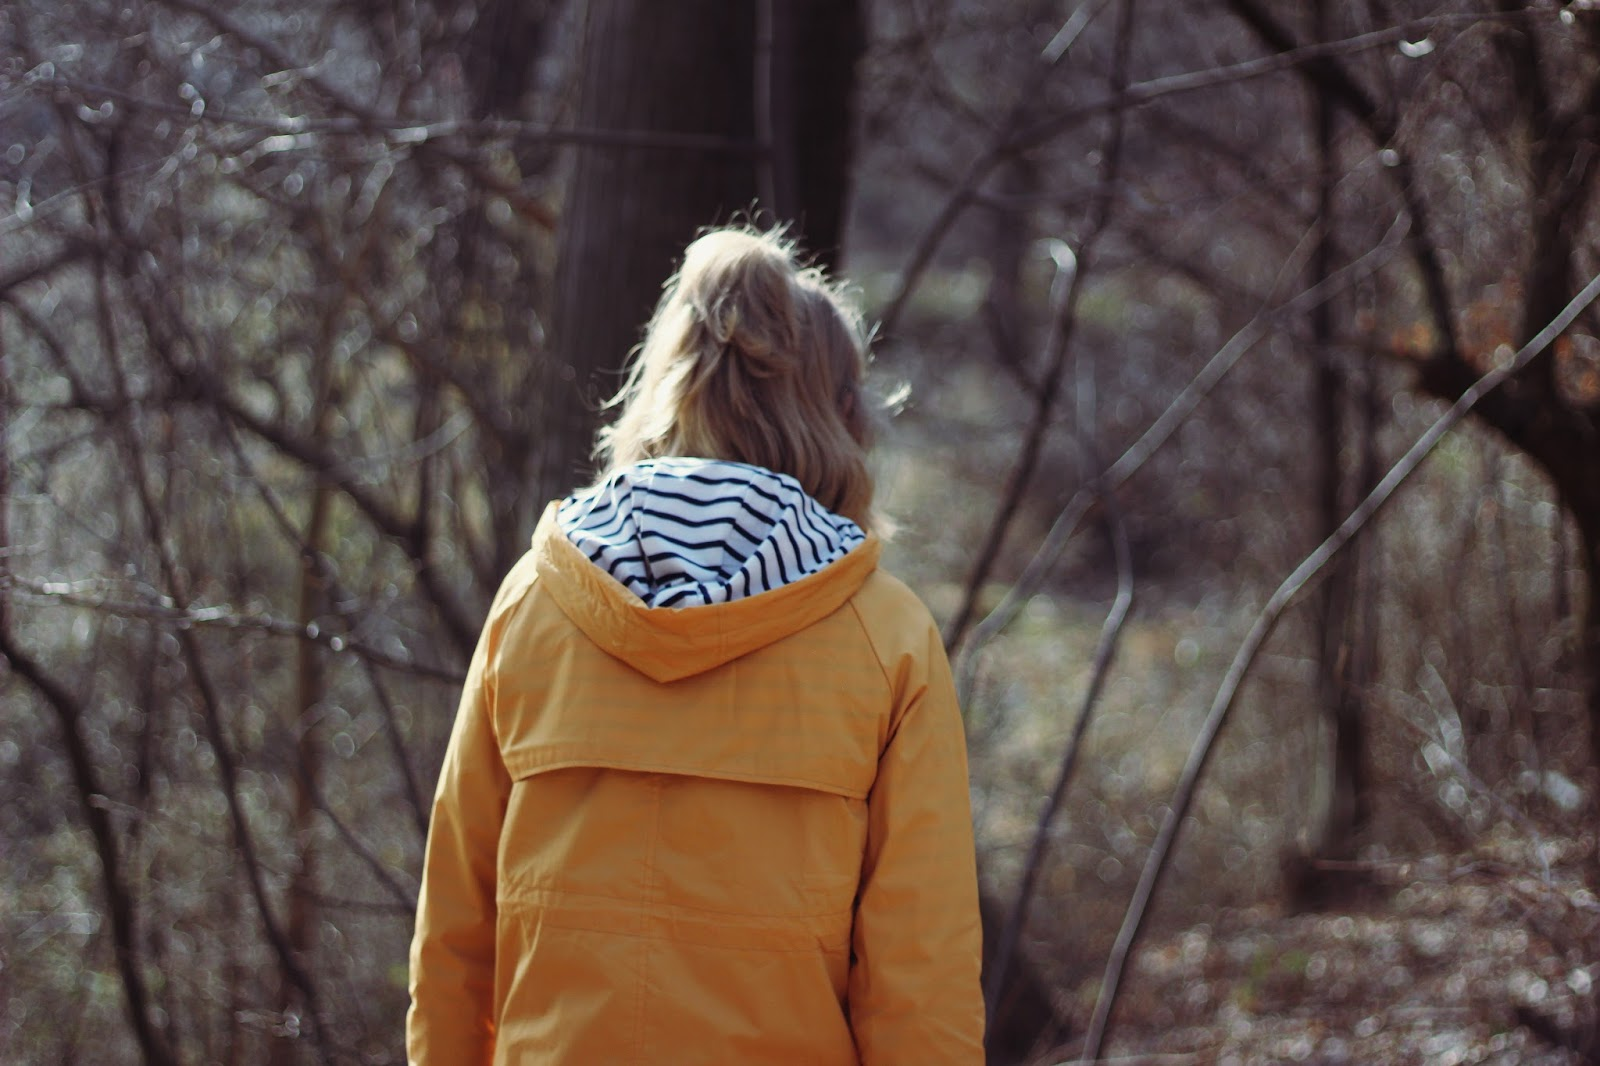 filipa canic, youarethepoet, filipa canic blog, you are the poet blog, zaful, yellow striped jacket,